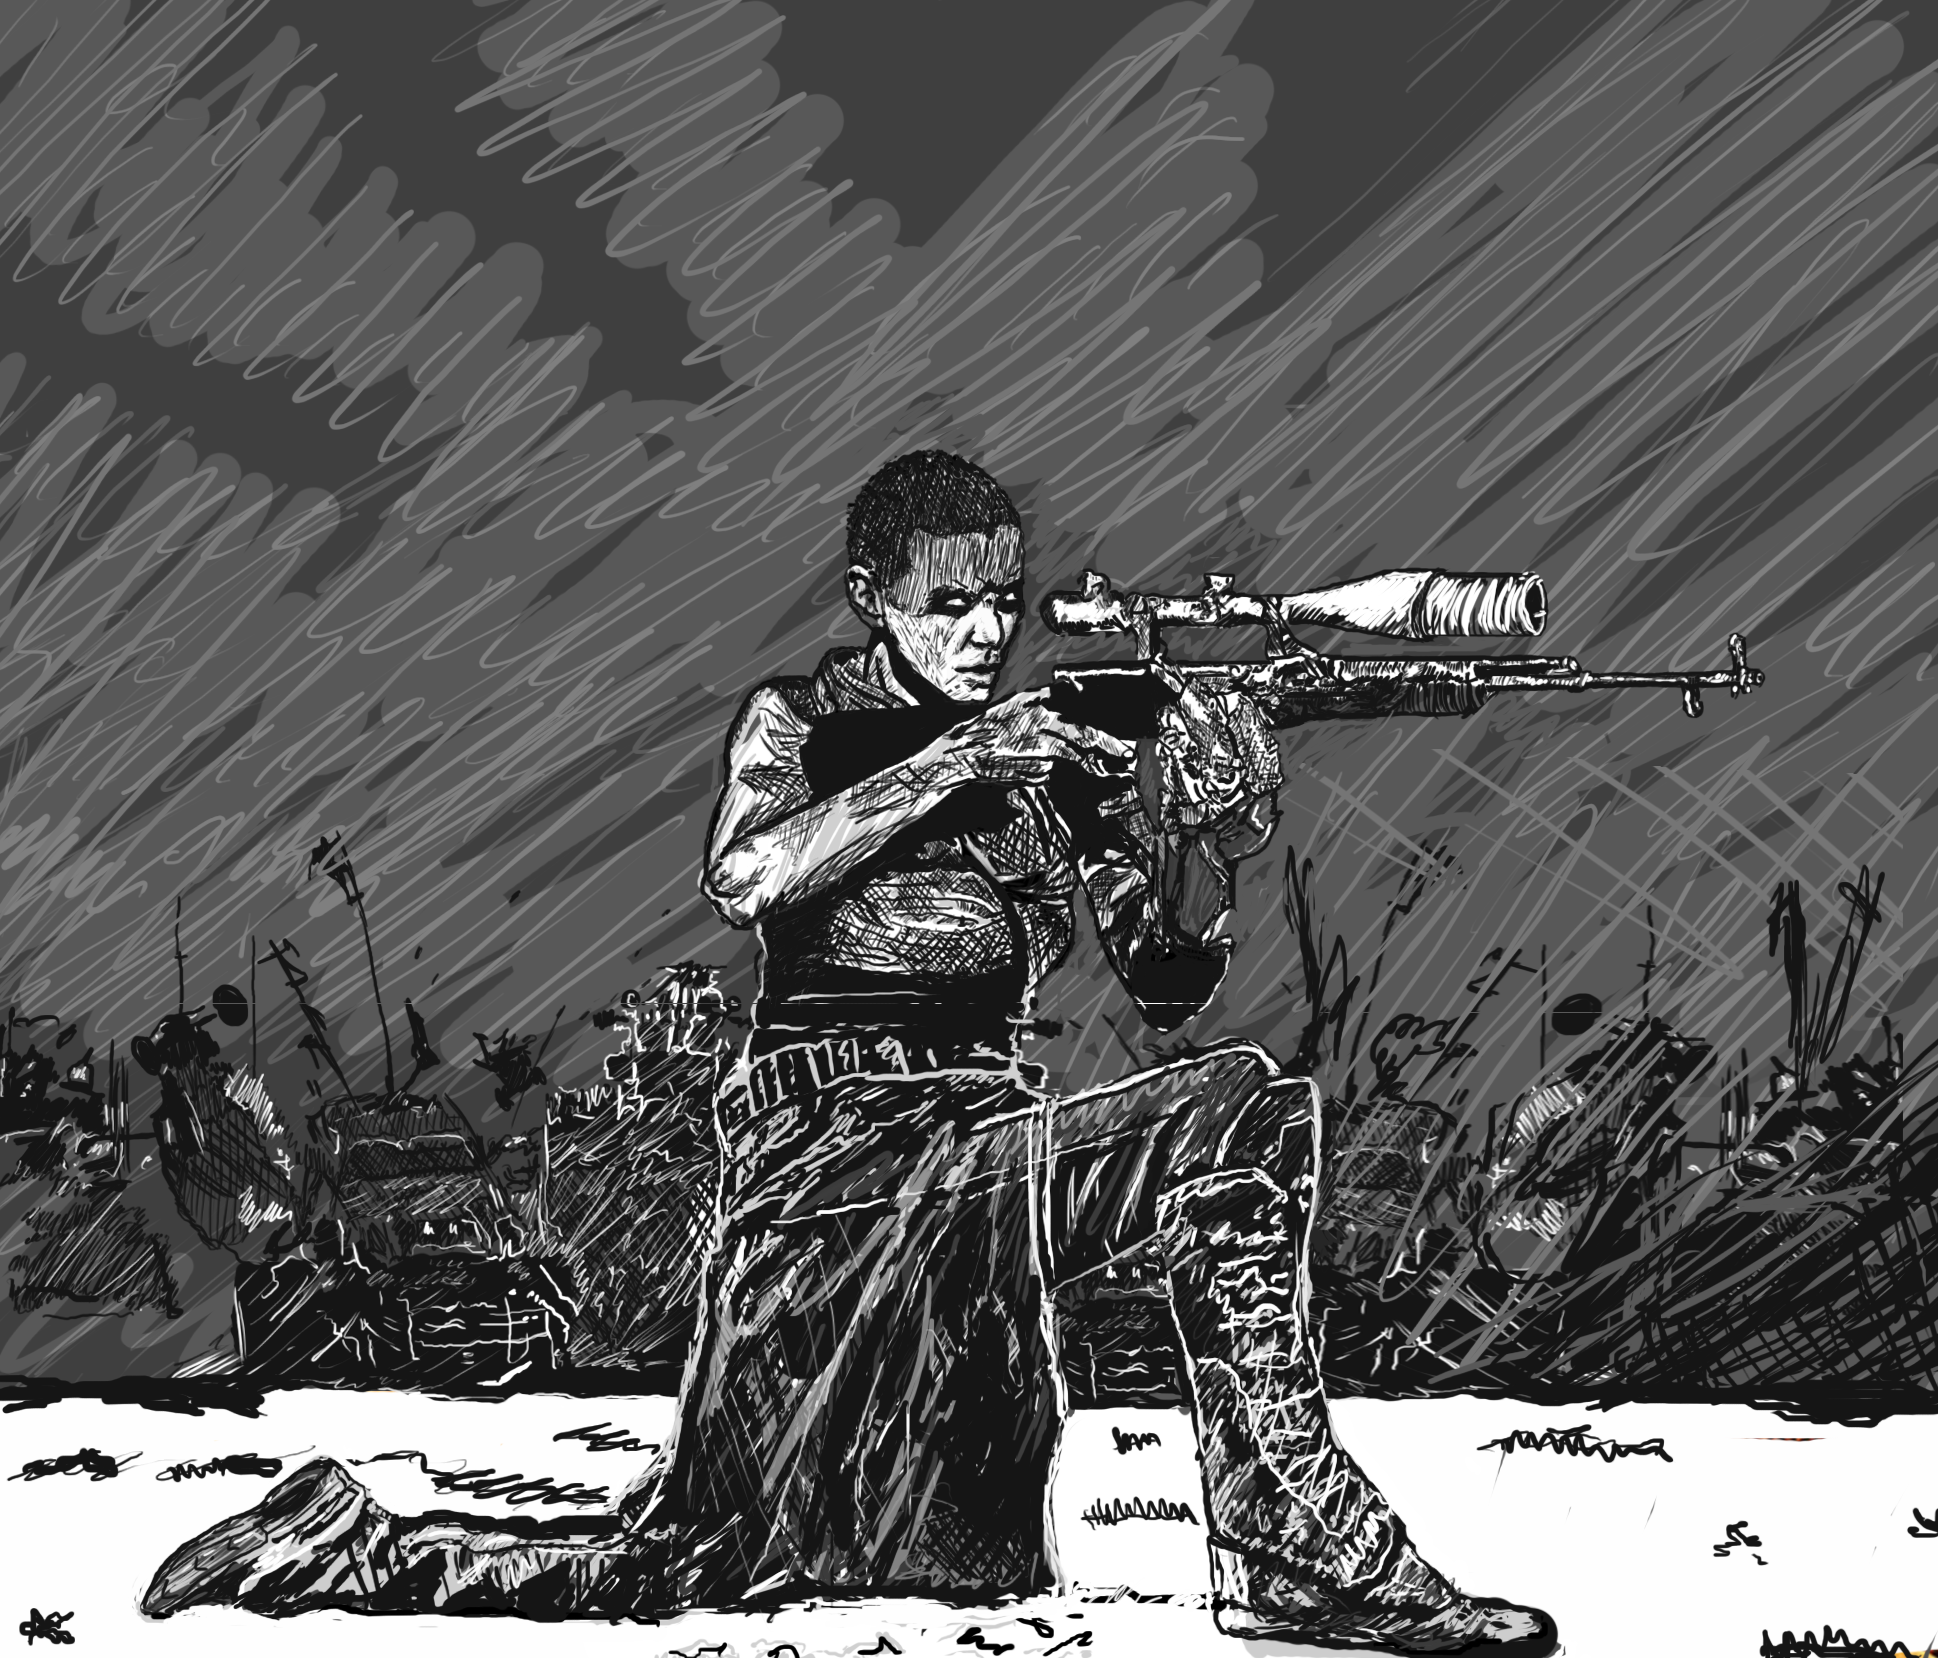 Imperator furiosa sketch with gun